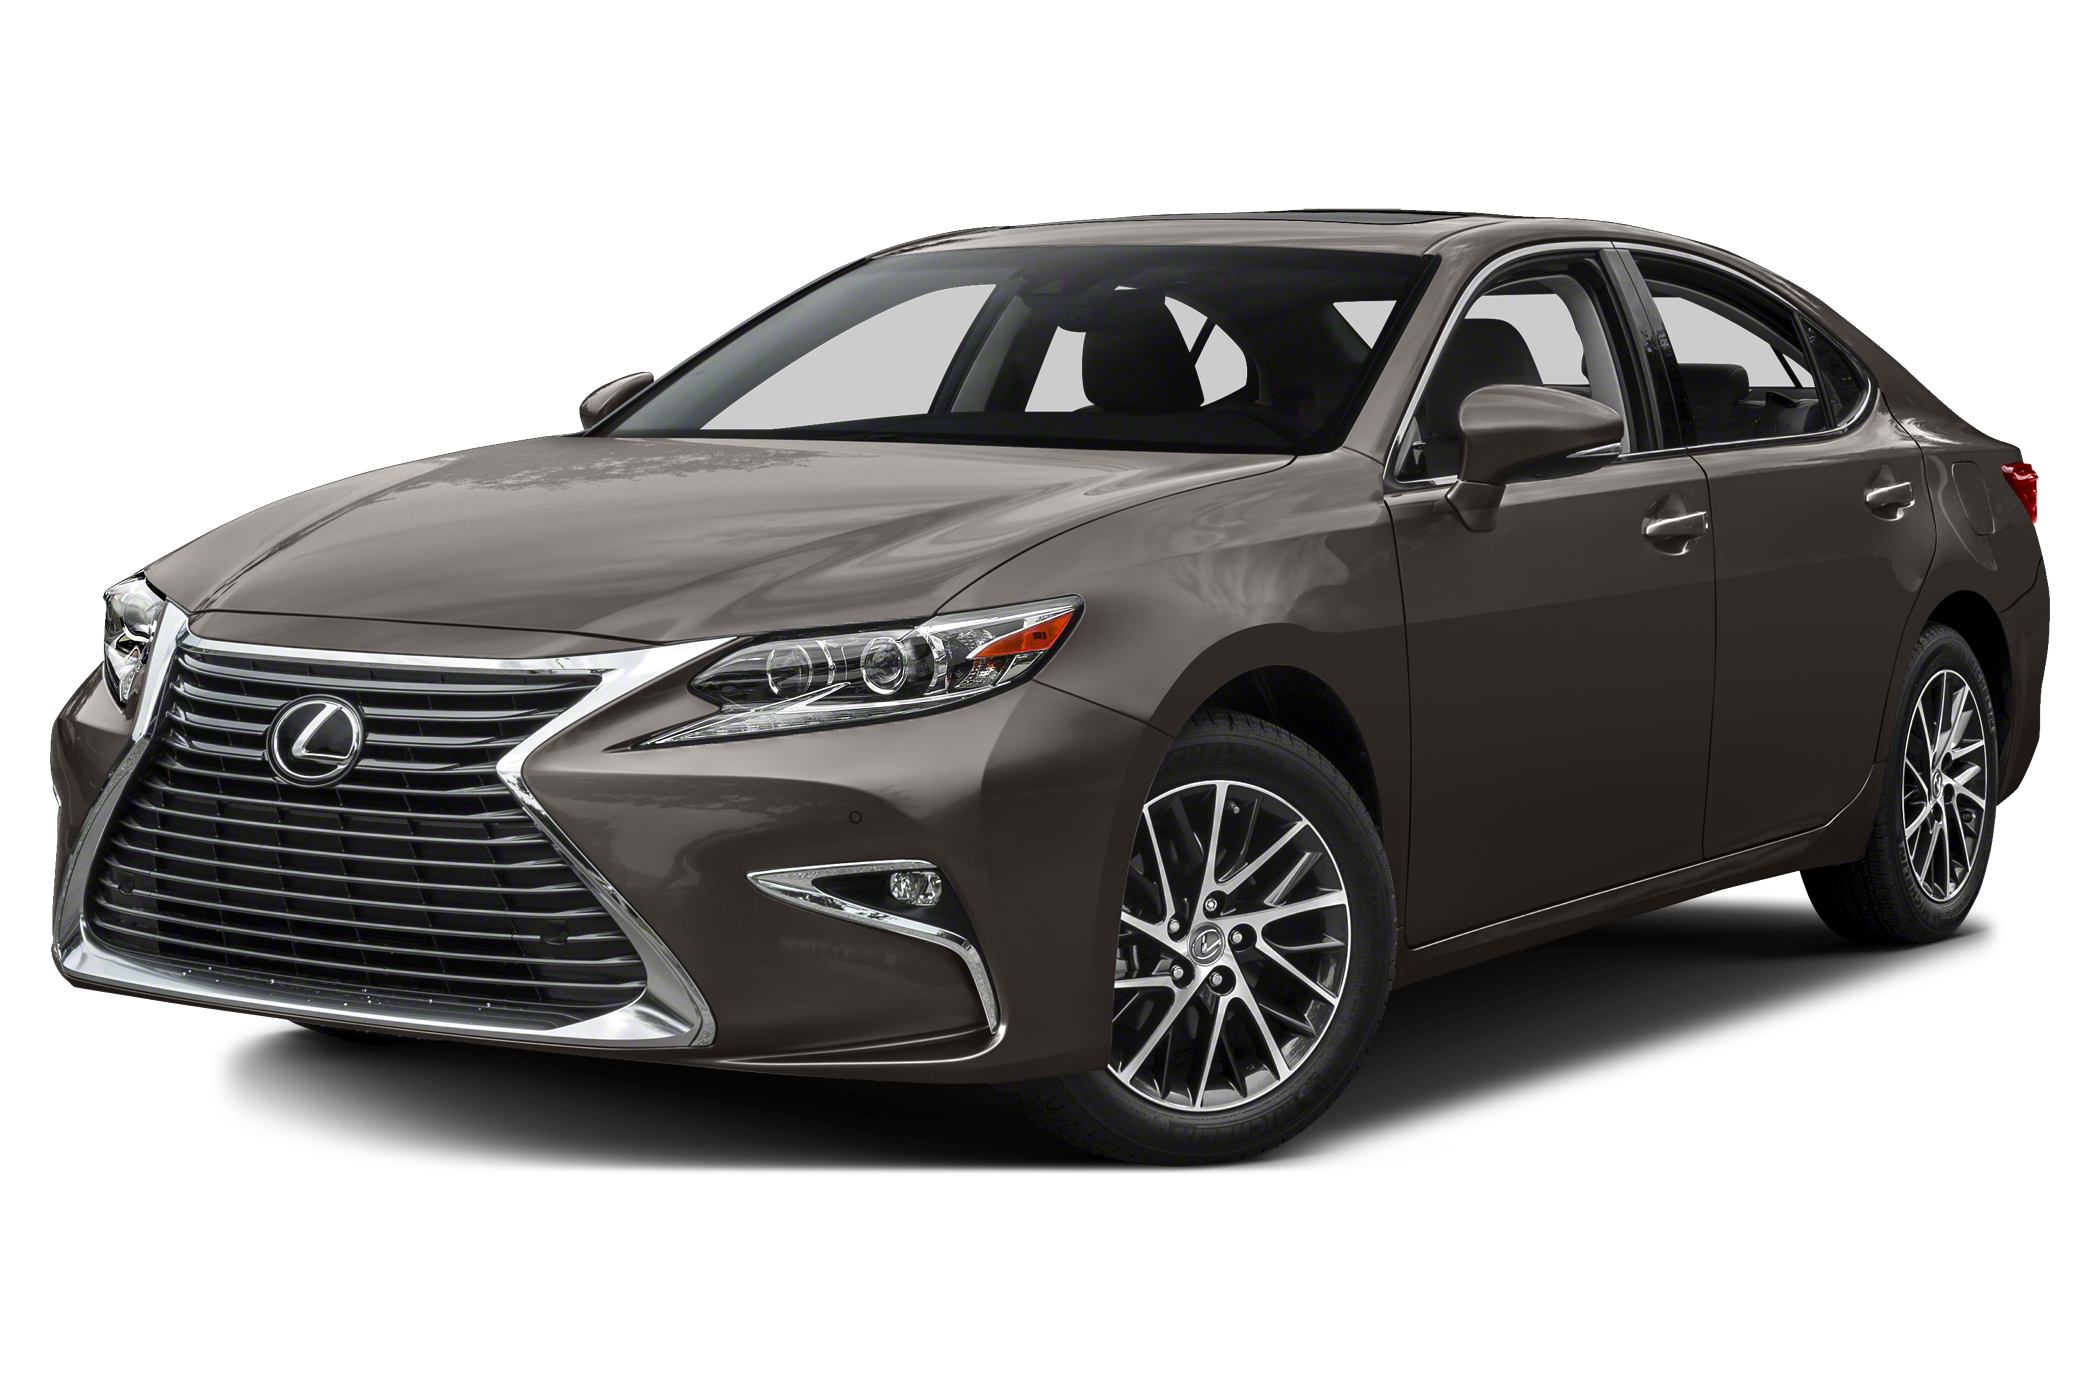 apply new edmonton dealer lease more pointe offers for ab your dealership credit pw disclaimer img used see edealer local lexus regional south user approved finance and conditions on